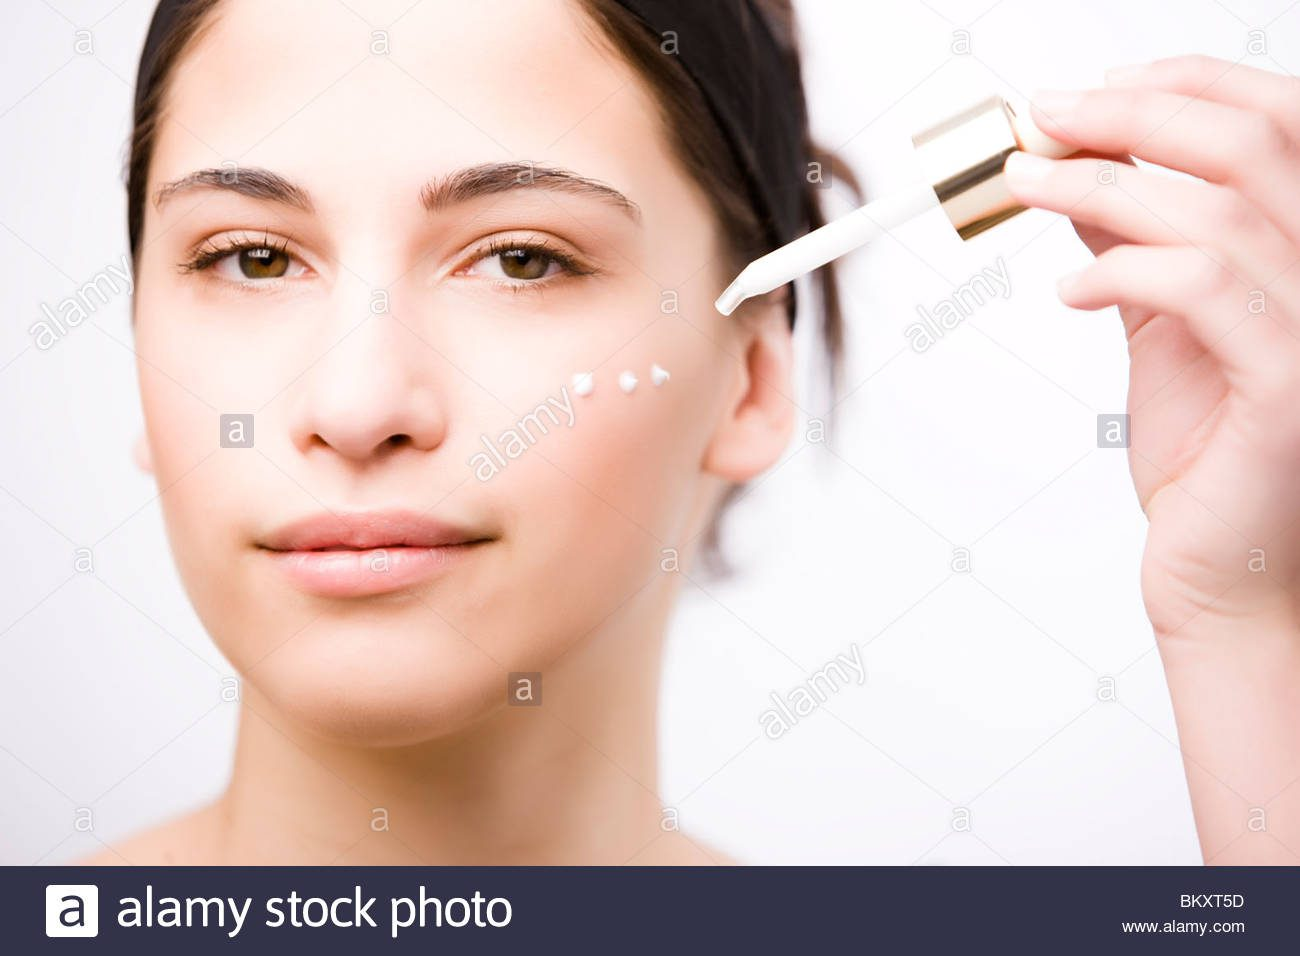 skincaresteps-close-up-of-a-young-woman-applying-an-anti-aging-serum-on-her-face